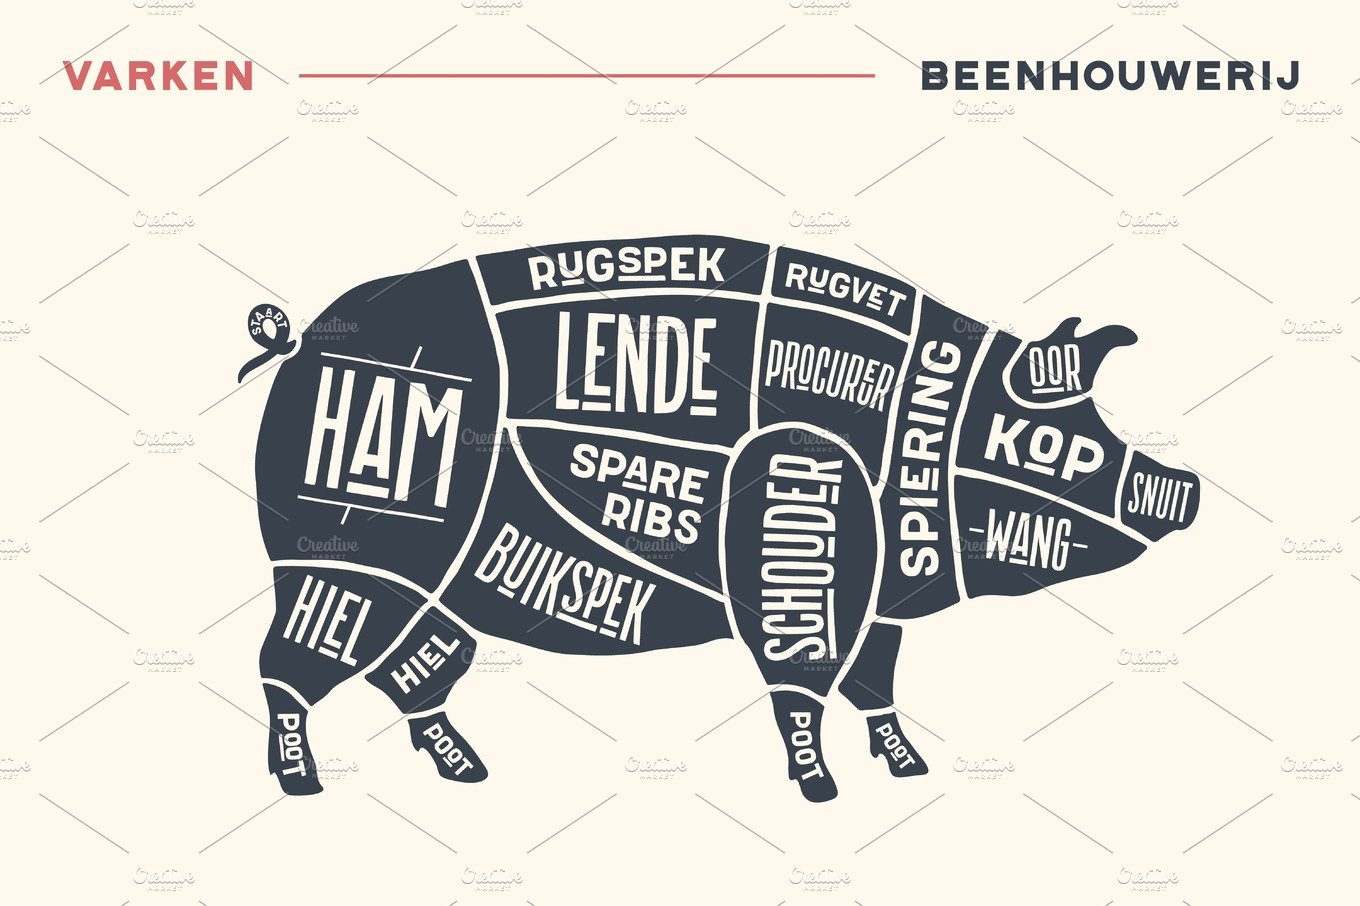 Vintage Butcher Cuts Of Beef Diagram Illustrations Creative Market Meat Cut Diagrams Poster